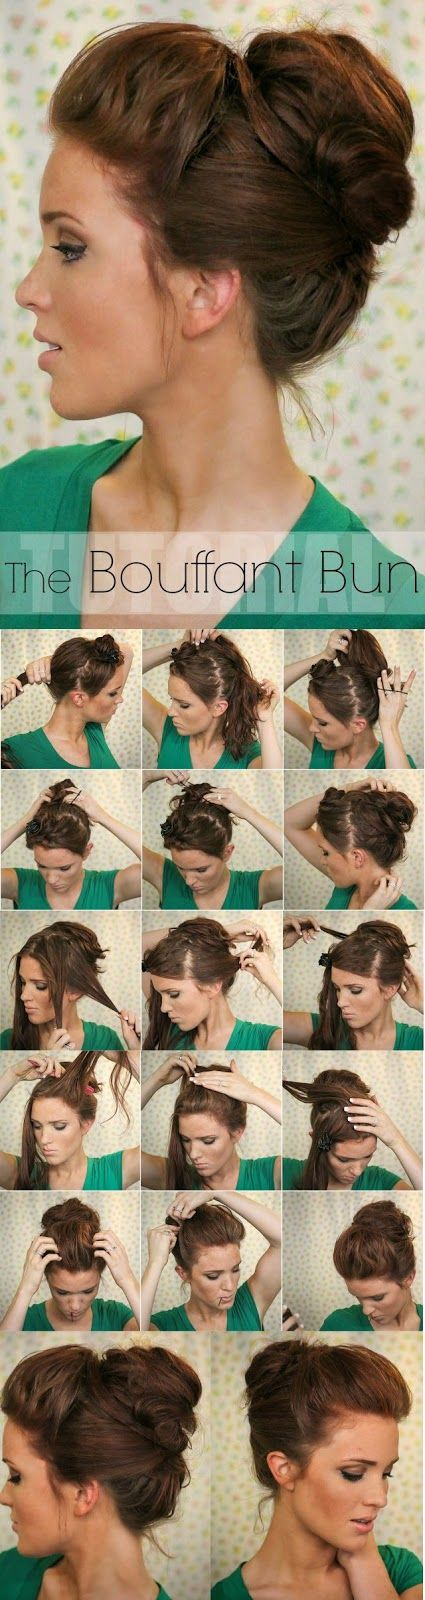 Super Easy Knotted Bun Updo and Simple Bun Hairstyle Tutorials : Wedding hairstyle                                                                                                                                                                                 More